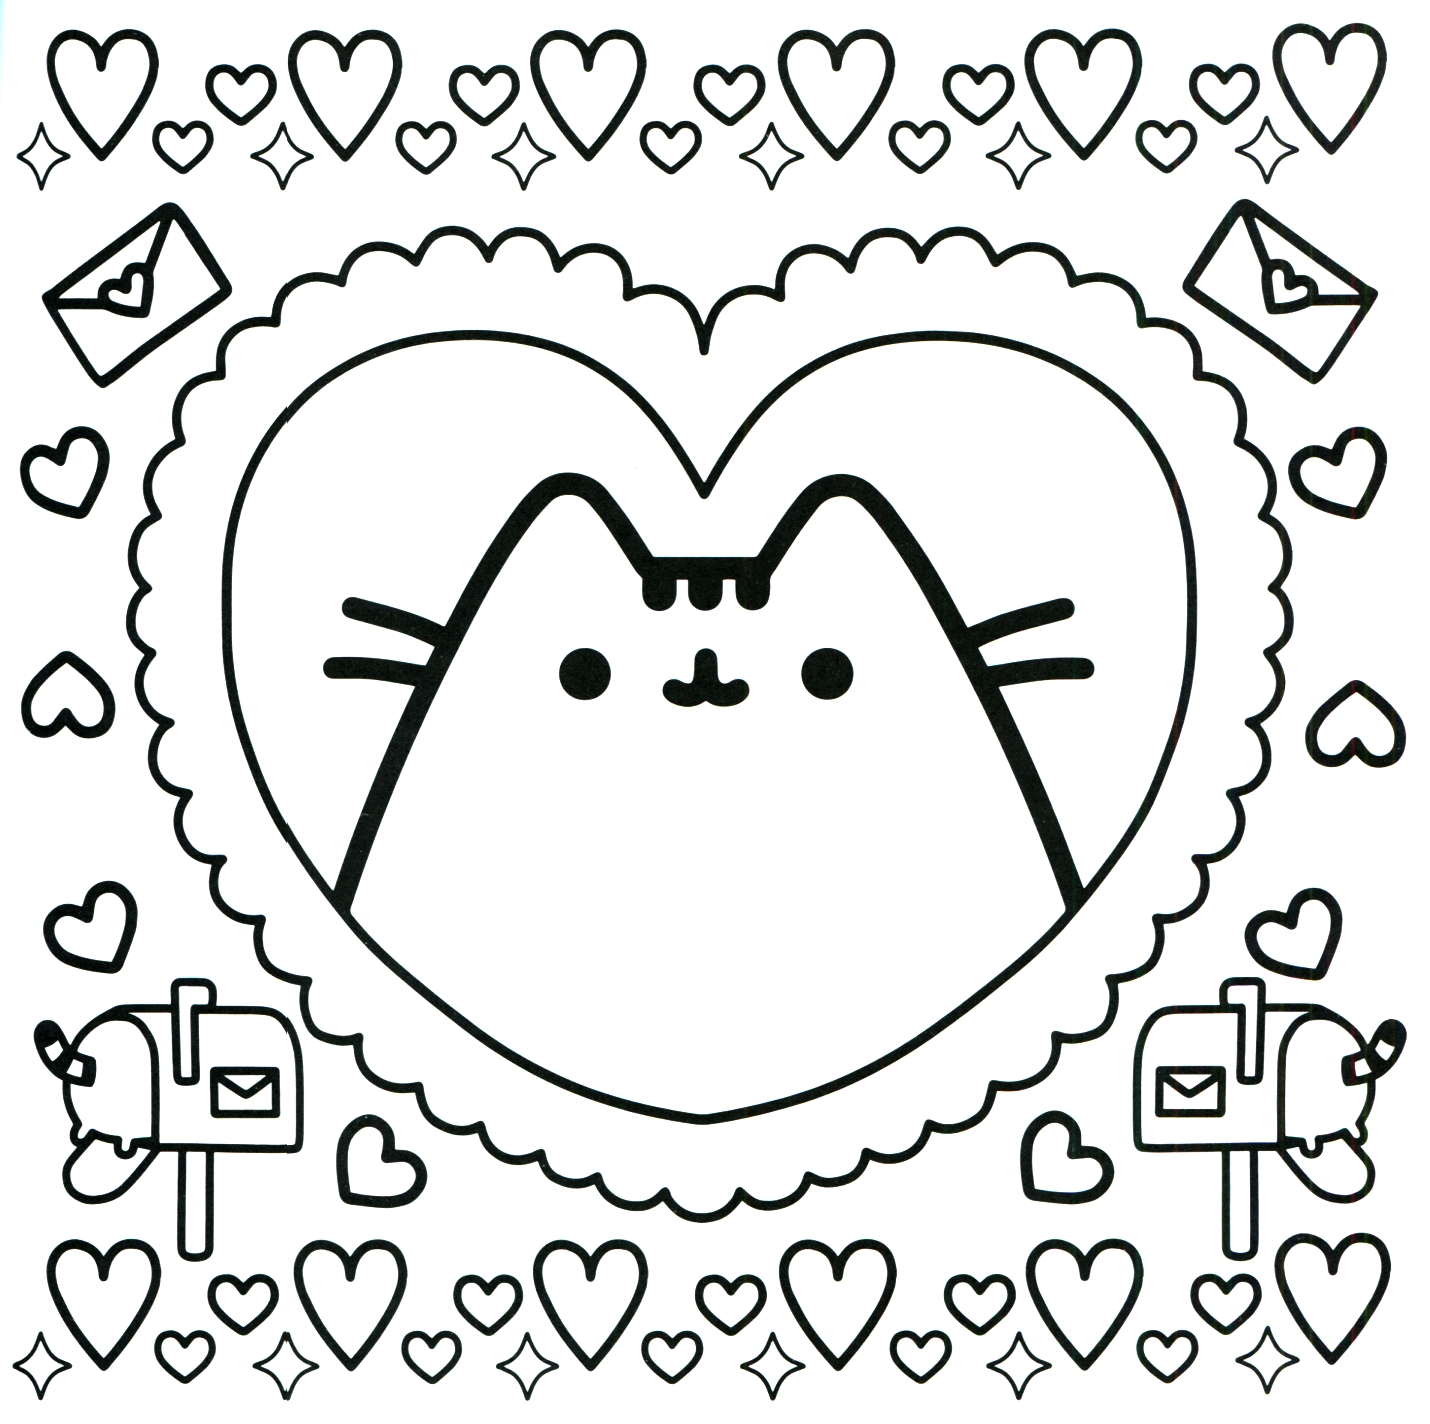 Pusheen Coloring Pages Printable At Getdrawings Com Free For